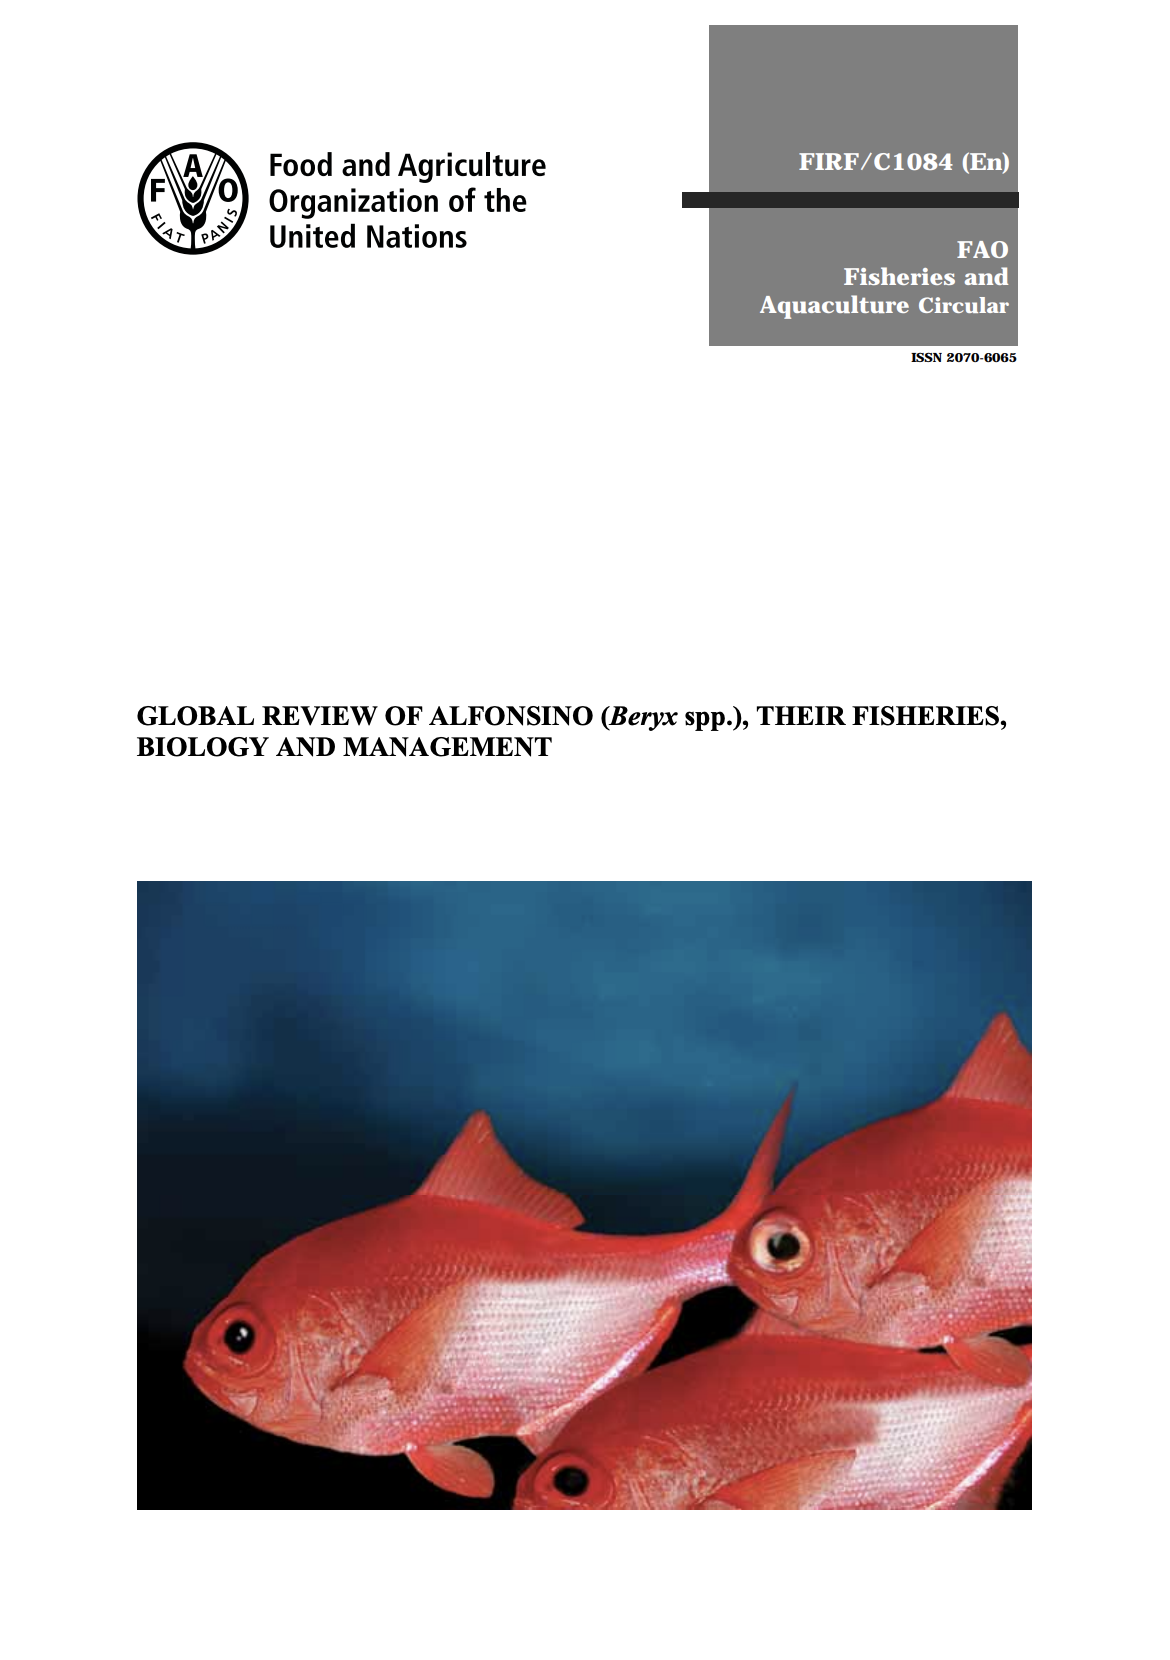 Global review of Alfonsino (Beryx spp.), their fisheries, biology and management